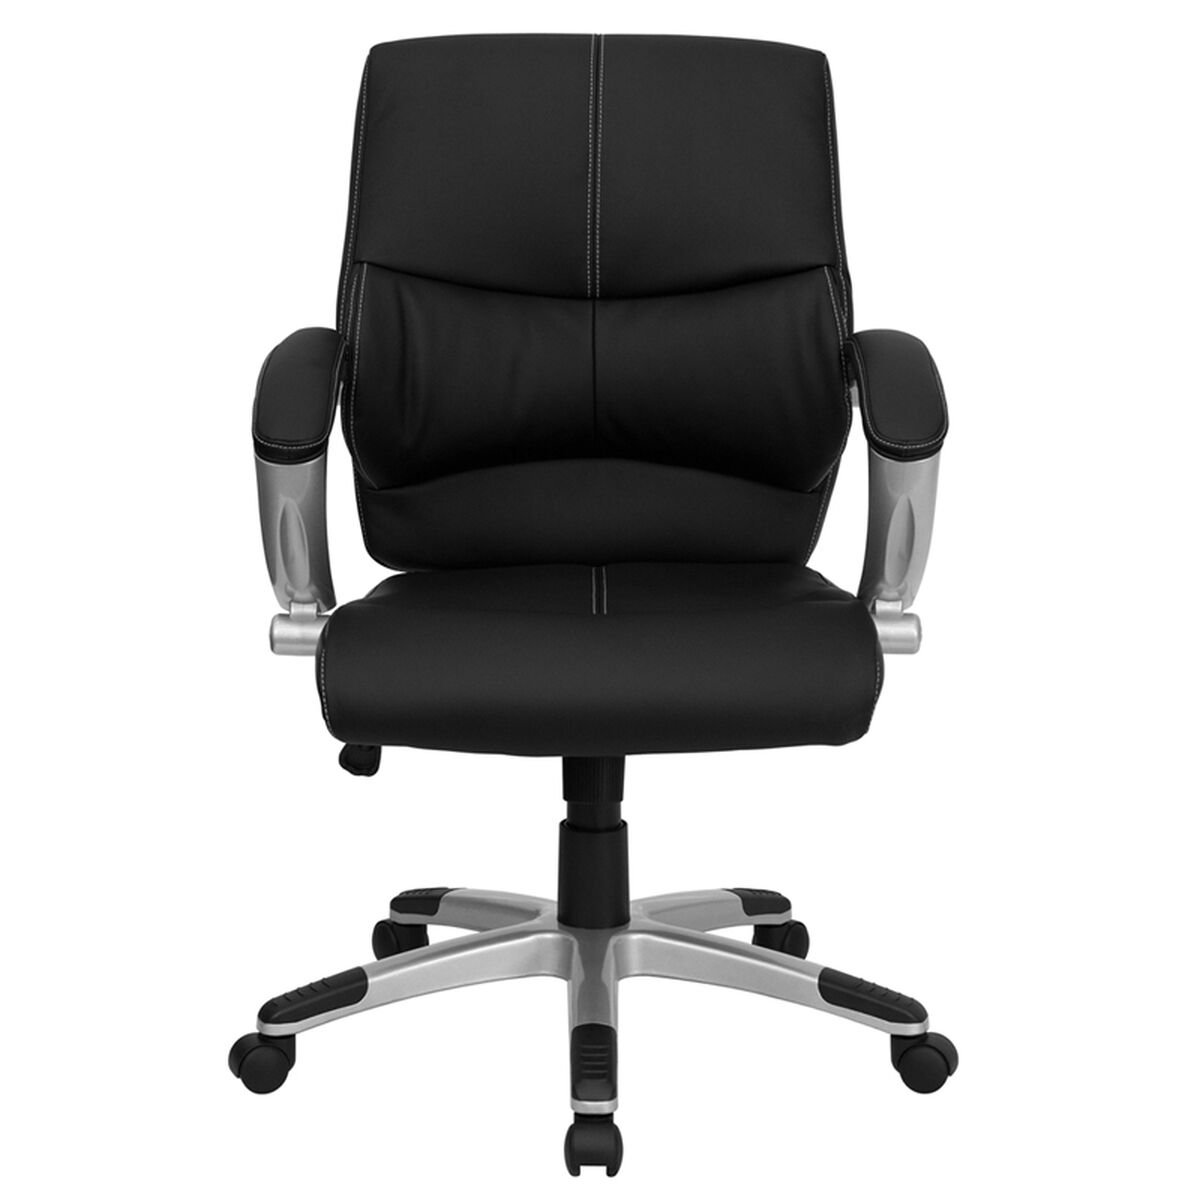 Flash furniture h 9637l 2 mid gg for H furniture ww chair